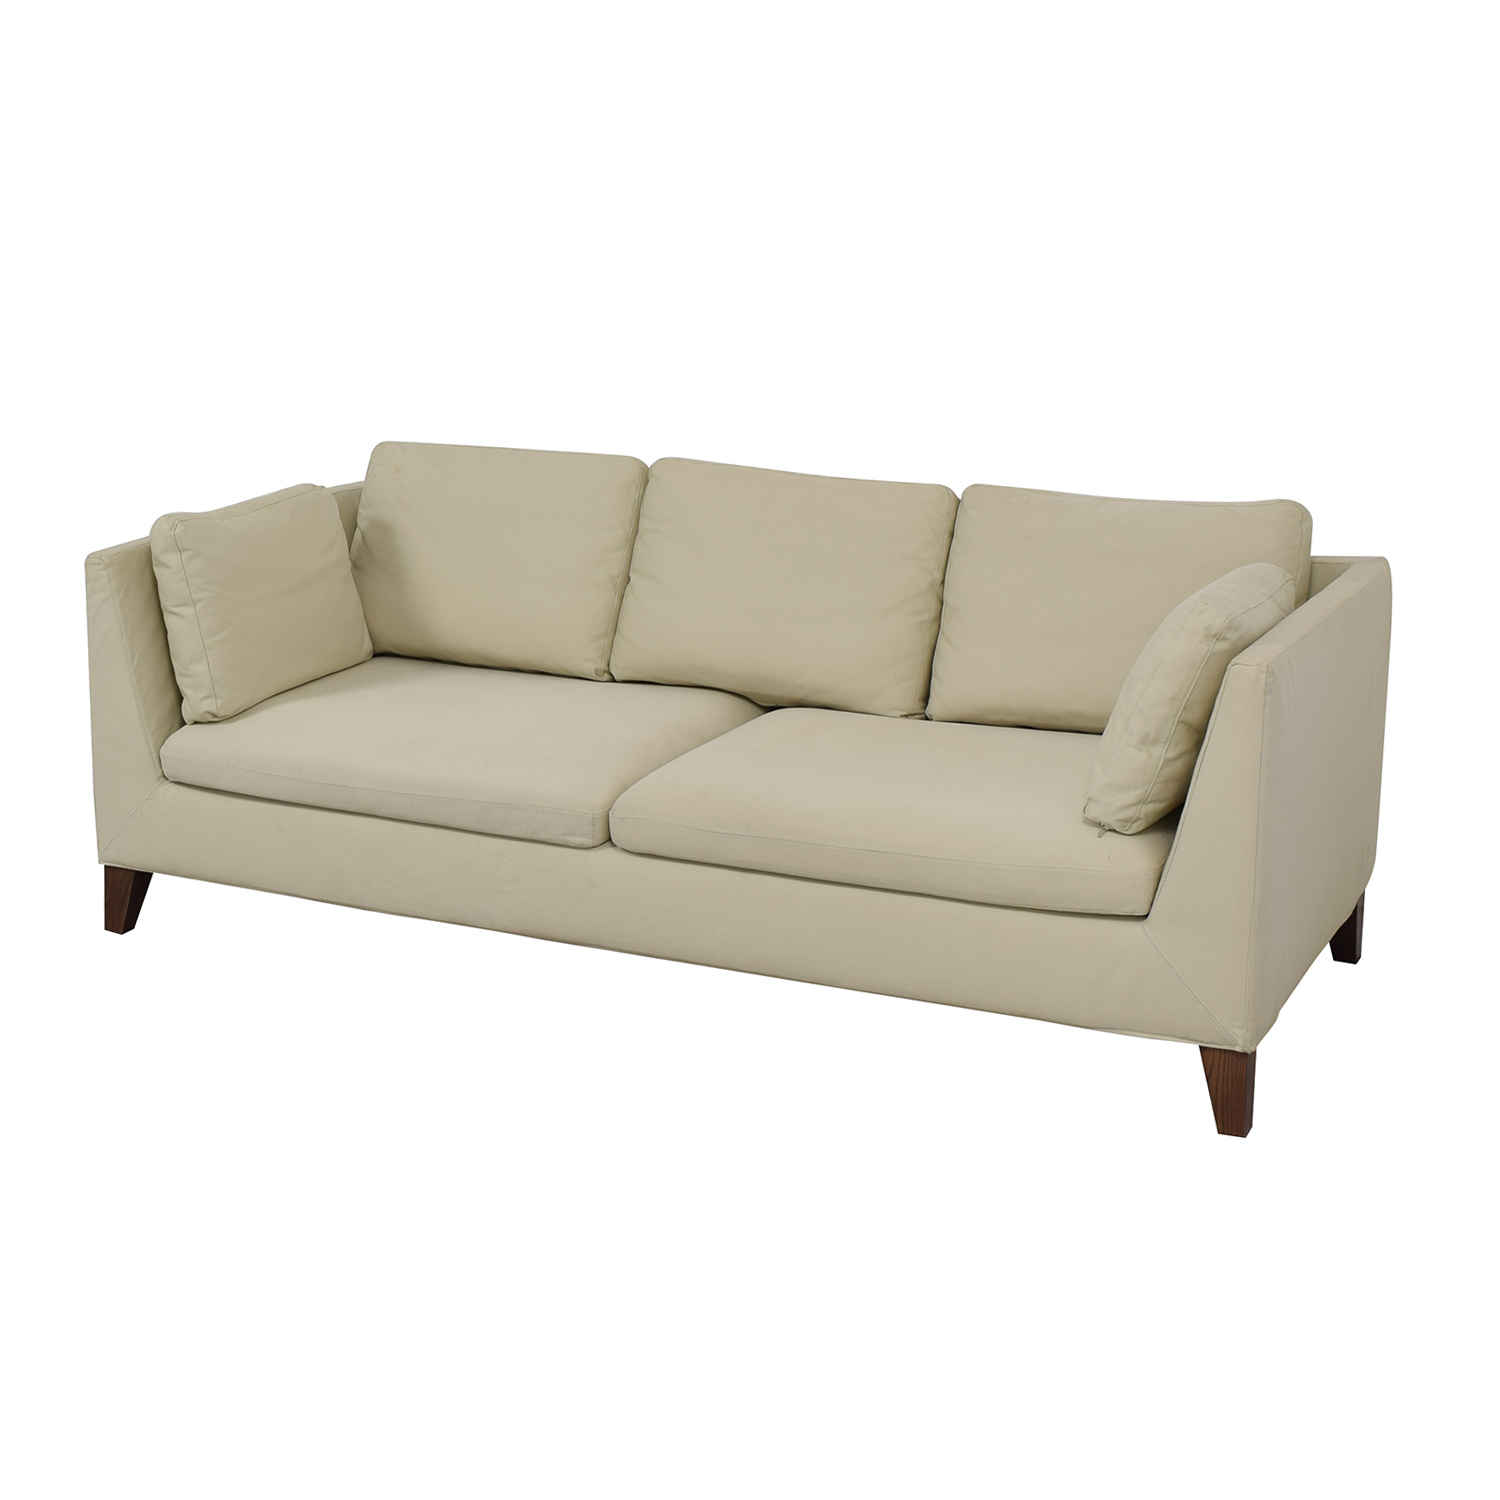 Ikea Stockholm Beige Two Cushion Sofa